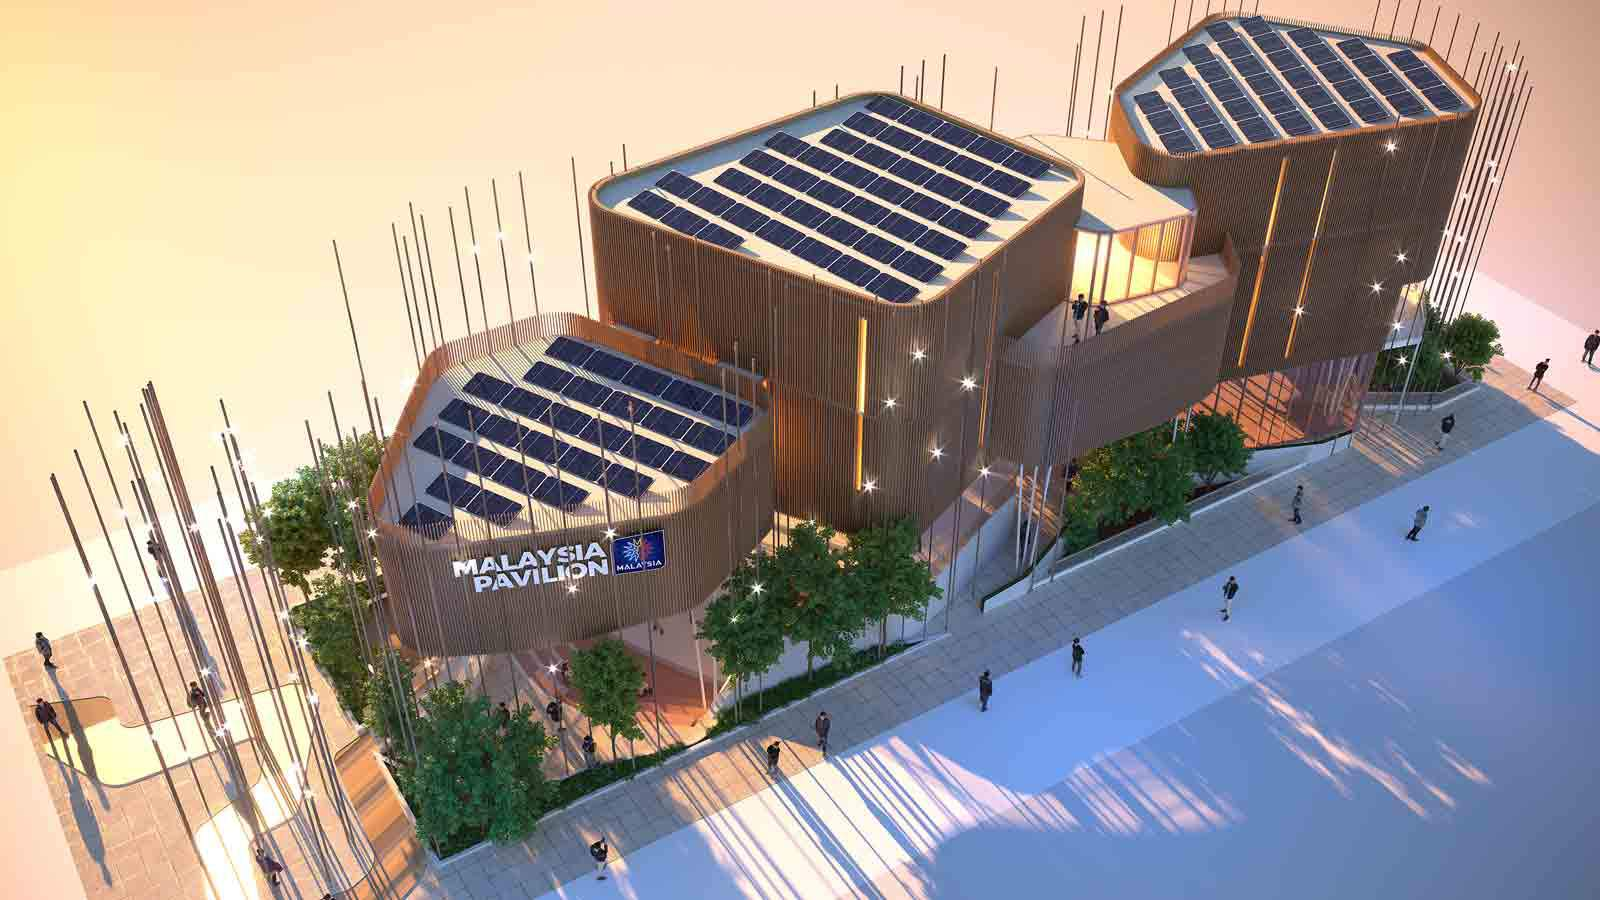 Malaysia Pavilion at Expo 2020 featuring solar PV cells on the roof.